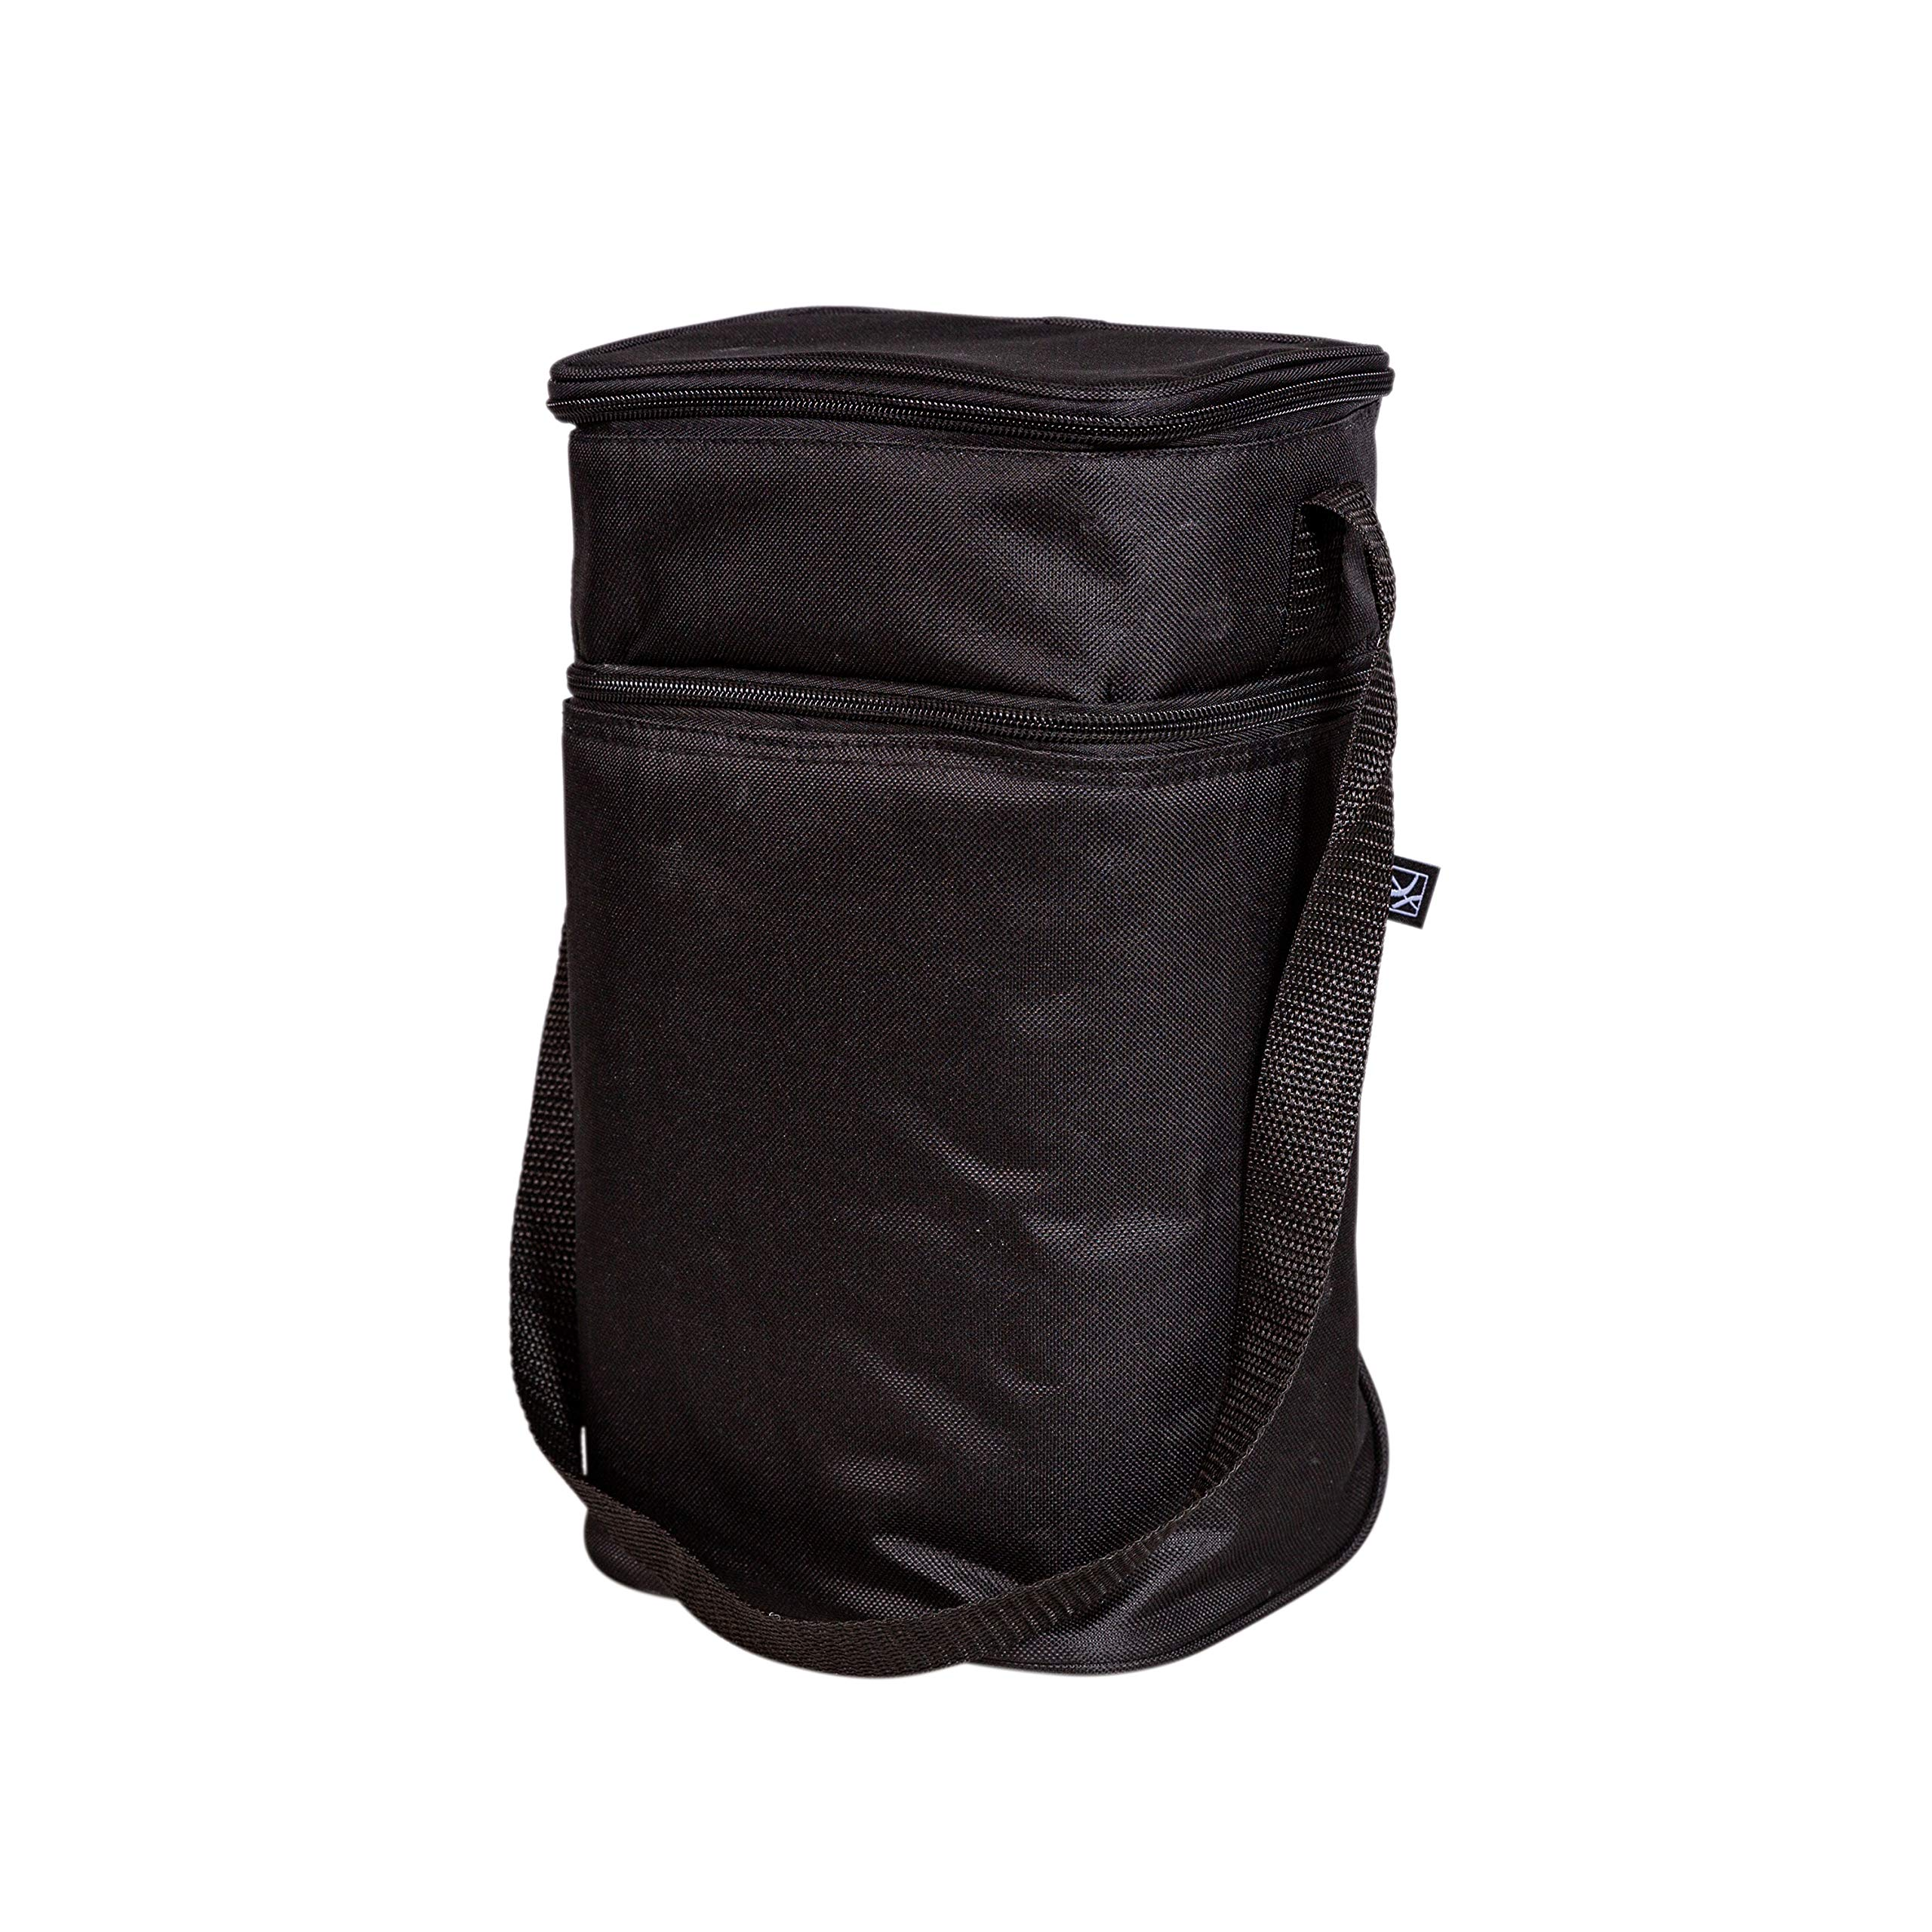 J.L. Childress 6 Bottle Cooler, Insulated Breastmilk Cooler & Lunch Bag for Baby Food & Bottles, Leak-Proof & Heat-Sealed, Ice Pack Included, Black by J.L. Childress